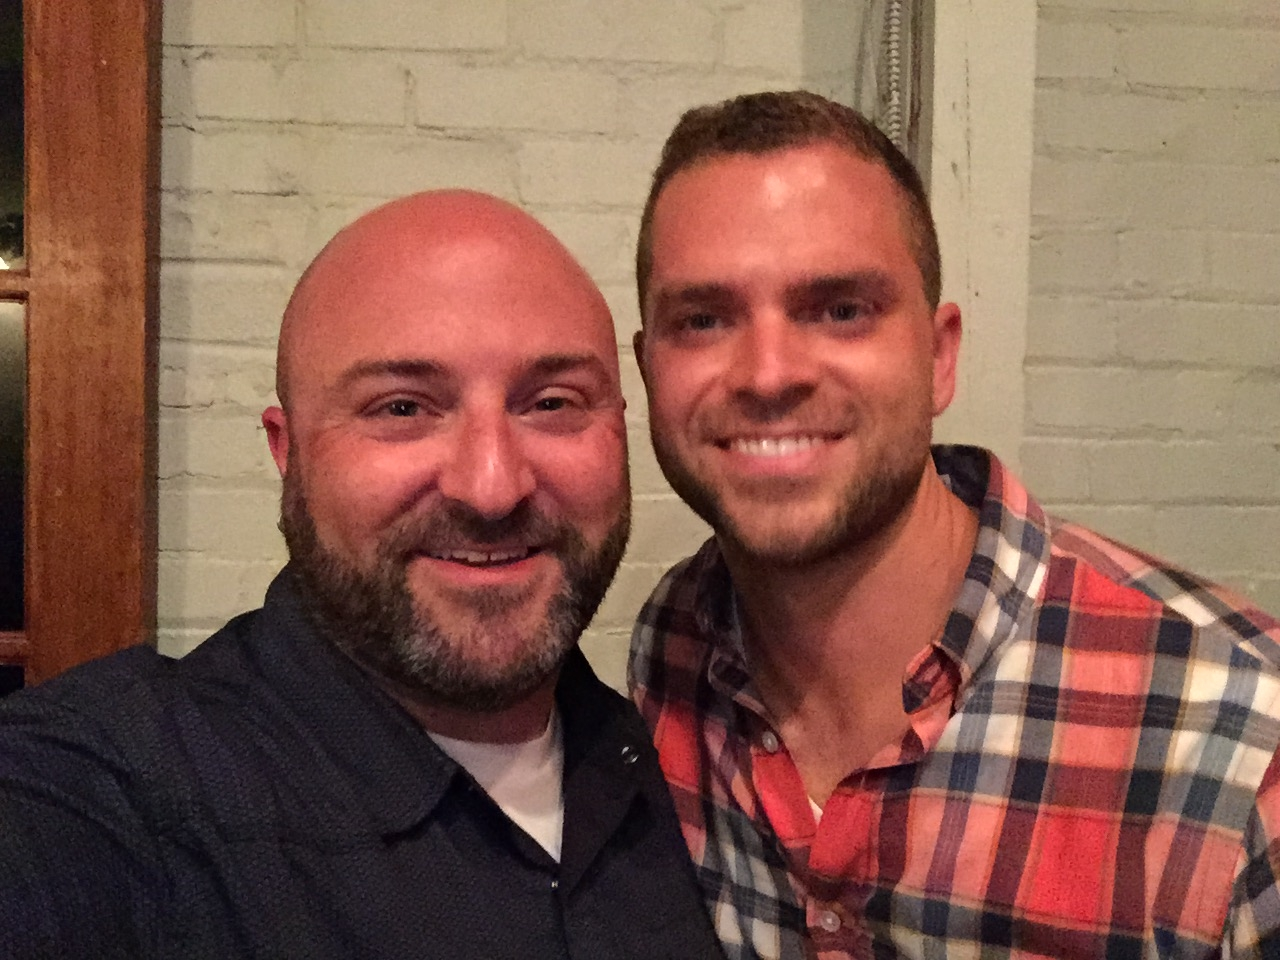 David Garber poses for a selfie with Drew at the Petworth News Shindig, June 29, 2015